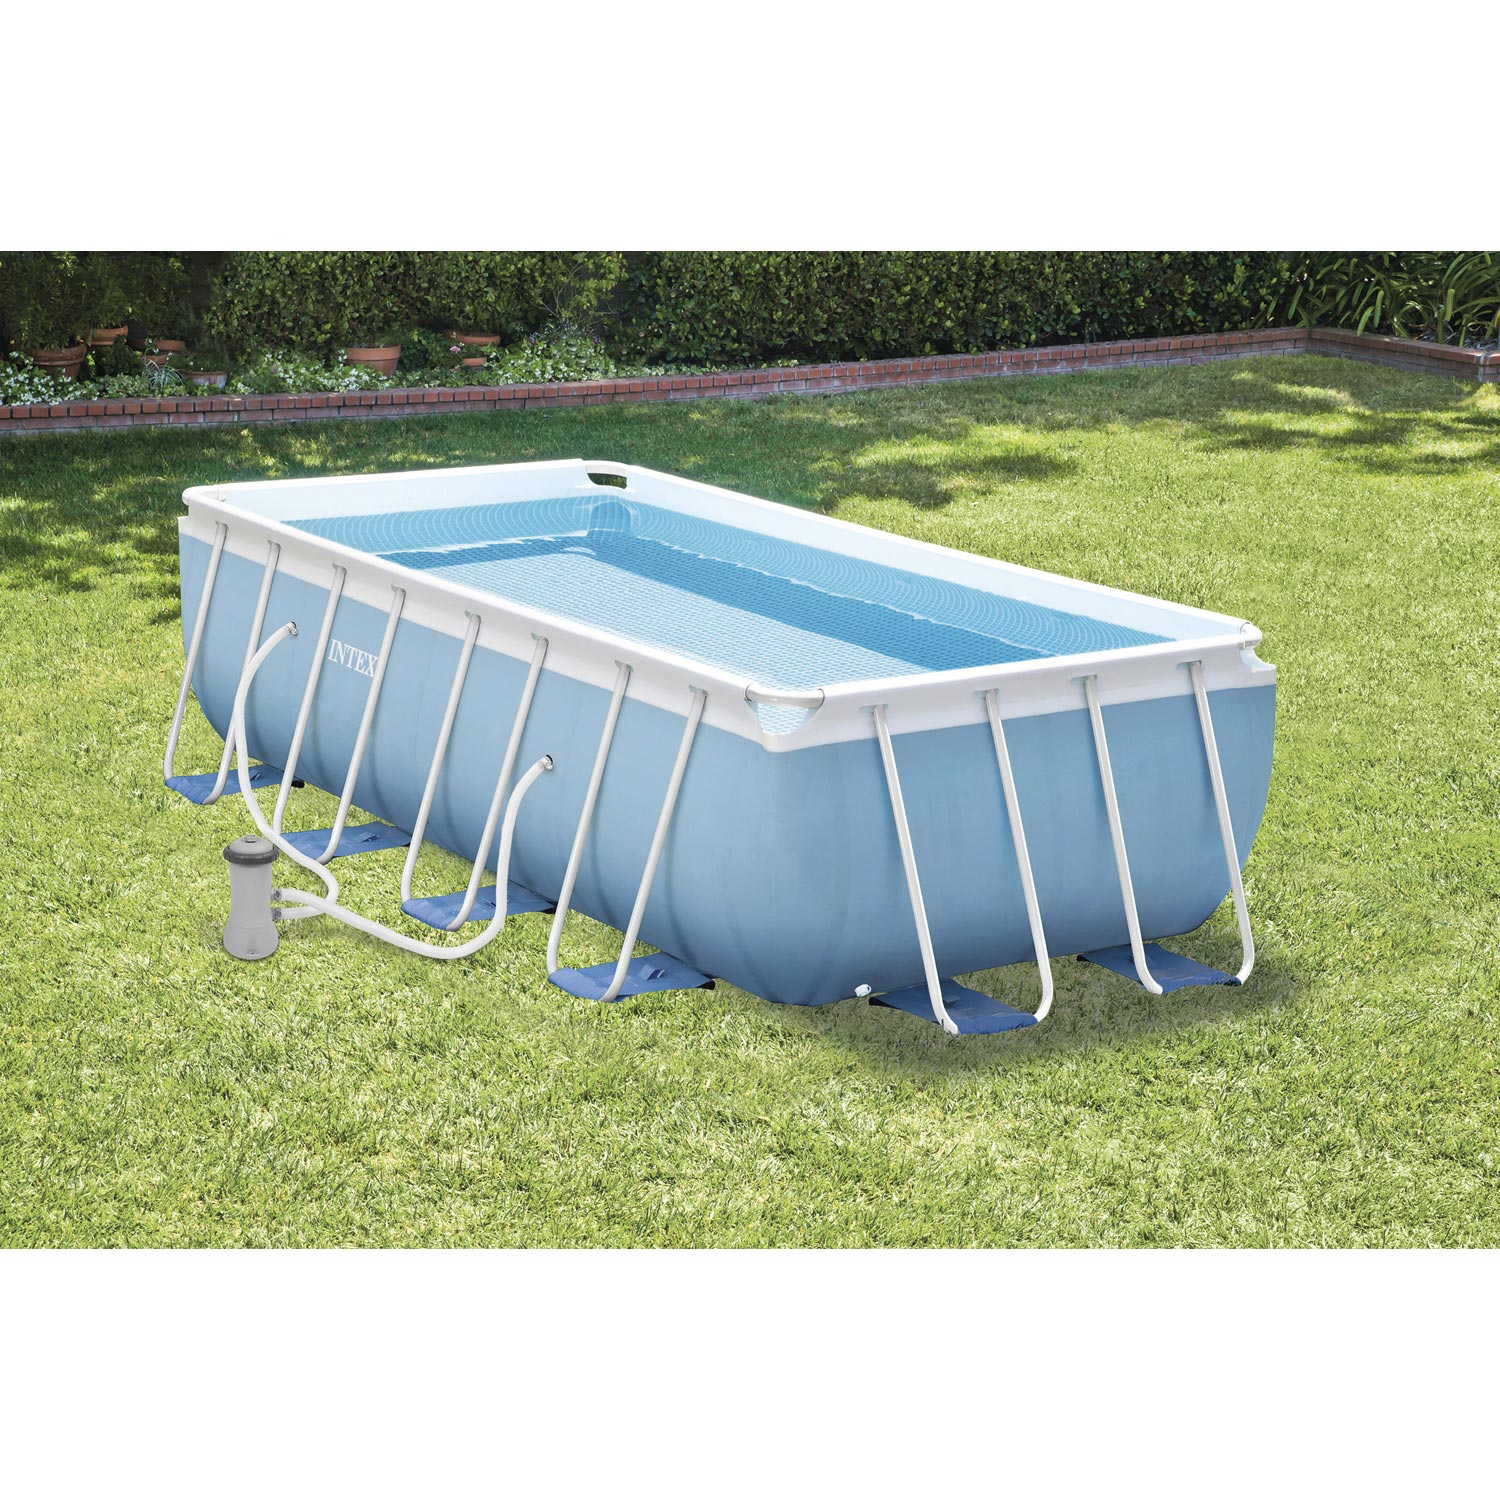 Piscine hors sol autoportante tubulaire prism frame intex for Piscine hors sol 8x4